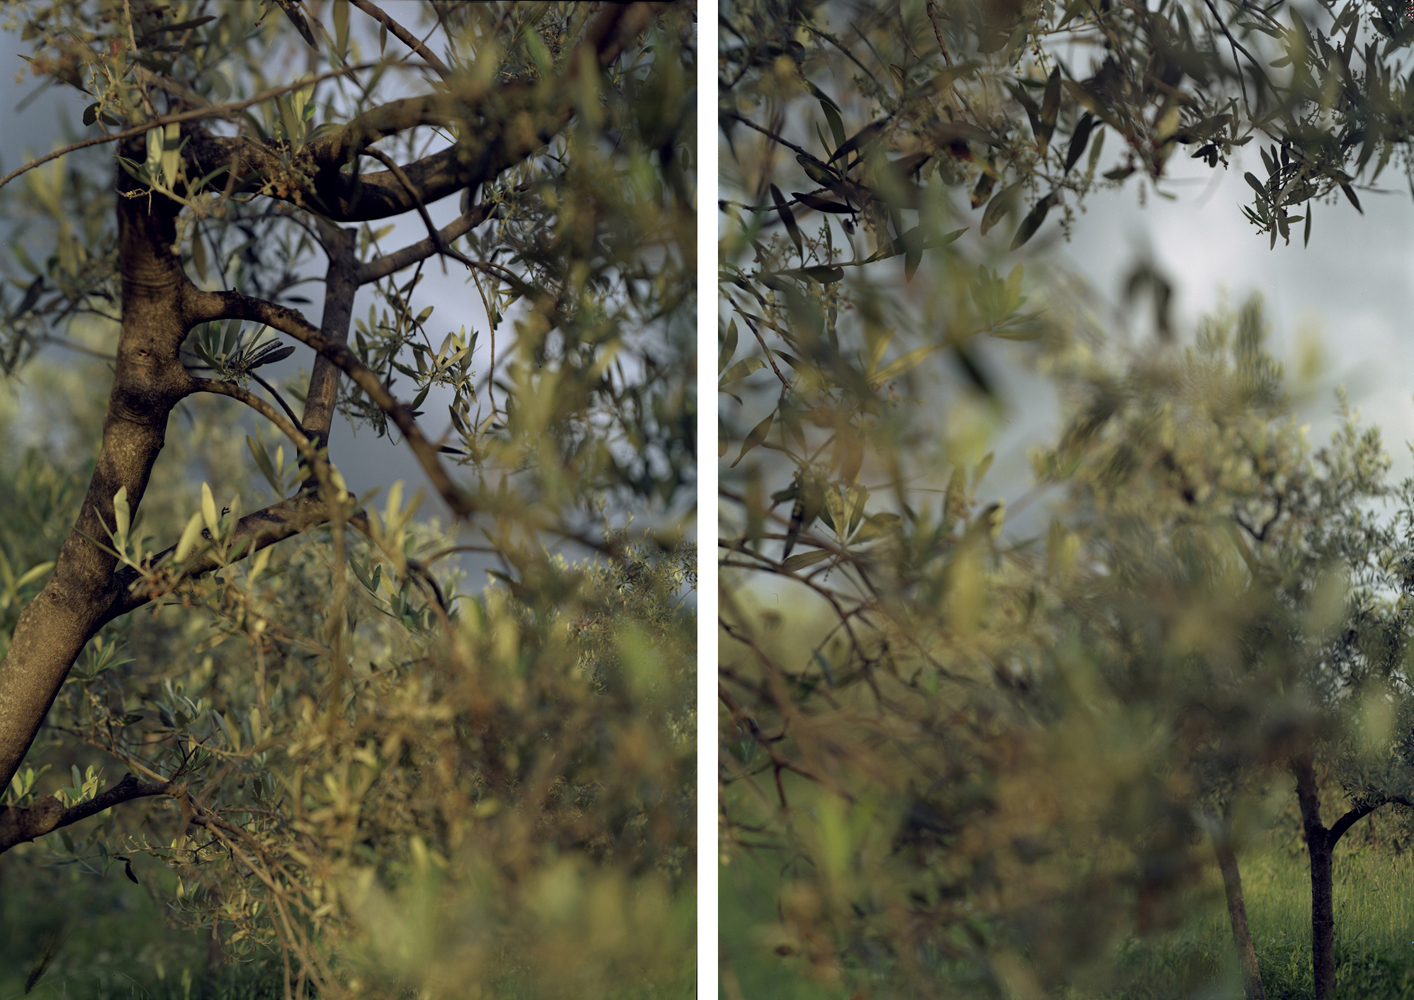 JoAnn Verburg, Waiting in Bazzano, 2008, 28.5 x 20 inches each, edition of 15